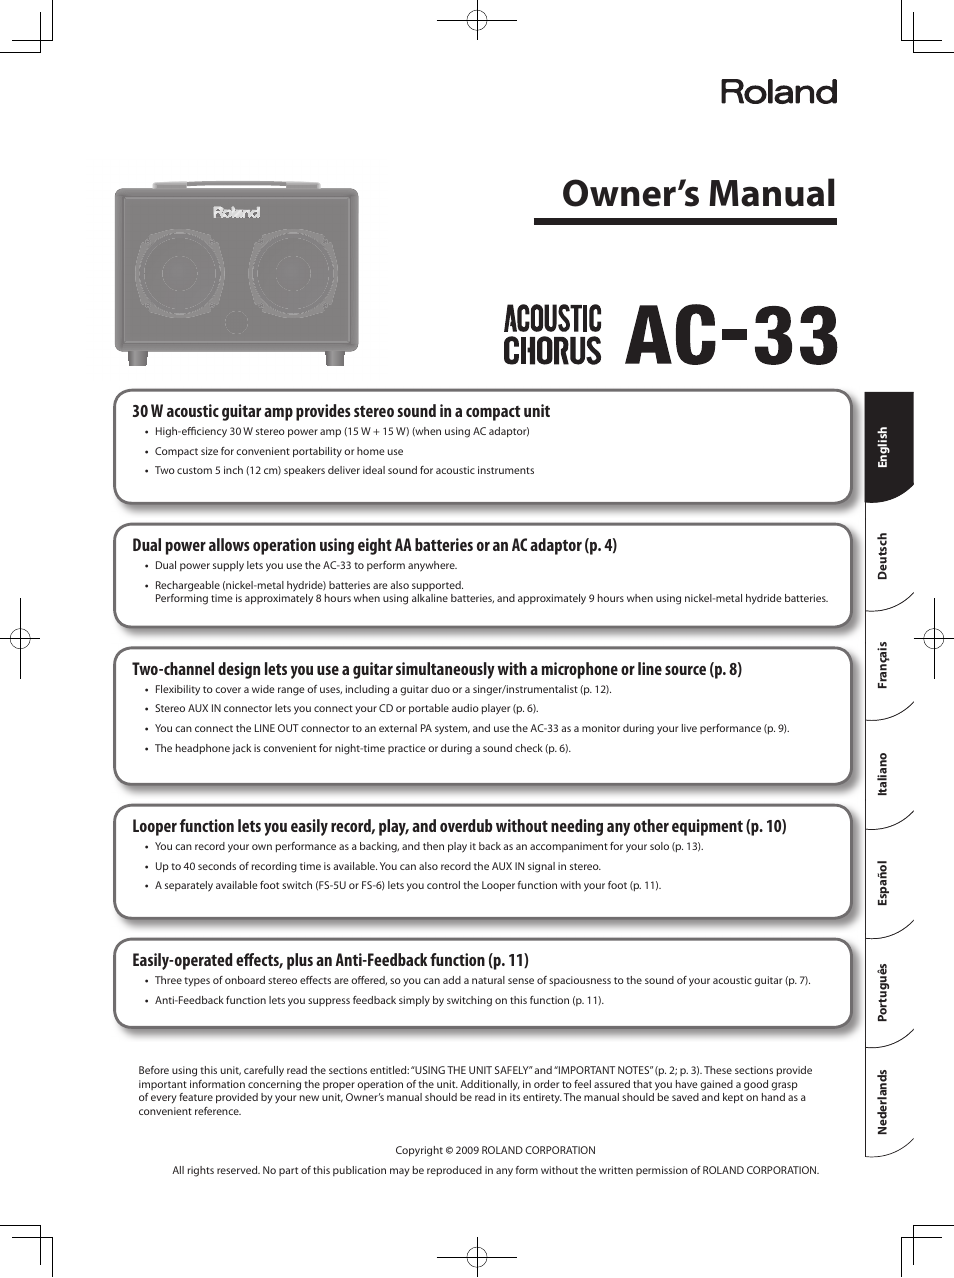 roland acoustic chorus ac 33 user manual 17 pages rh manualsdir com Roland Ac- 40 roland ac-33 user manual